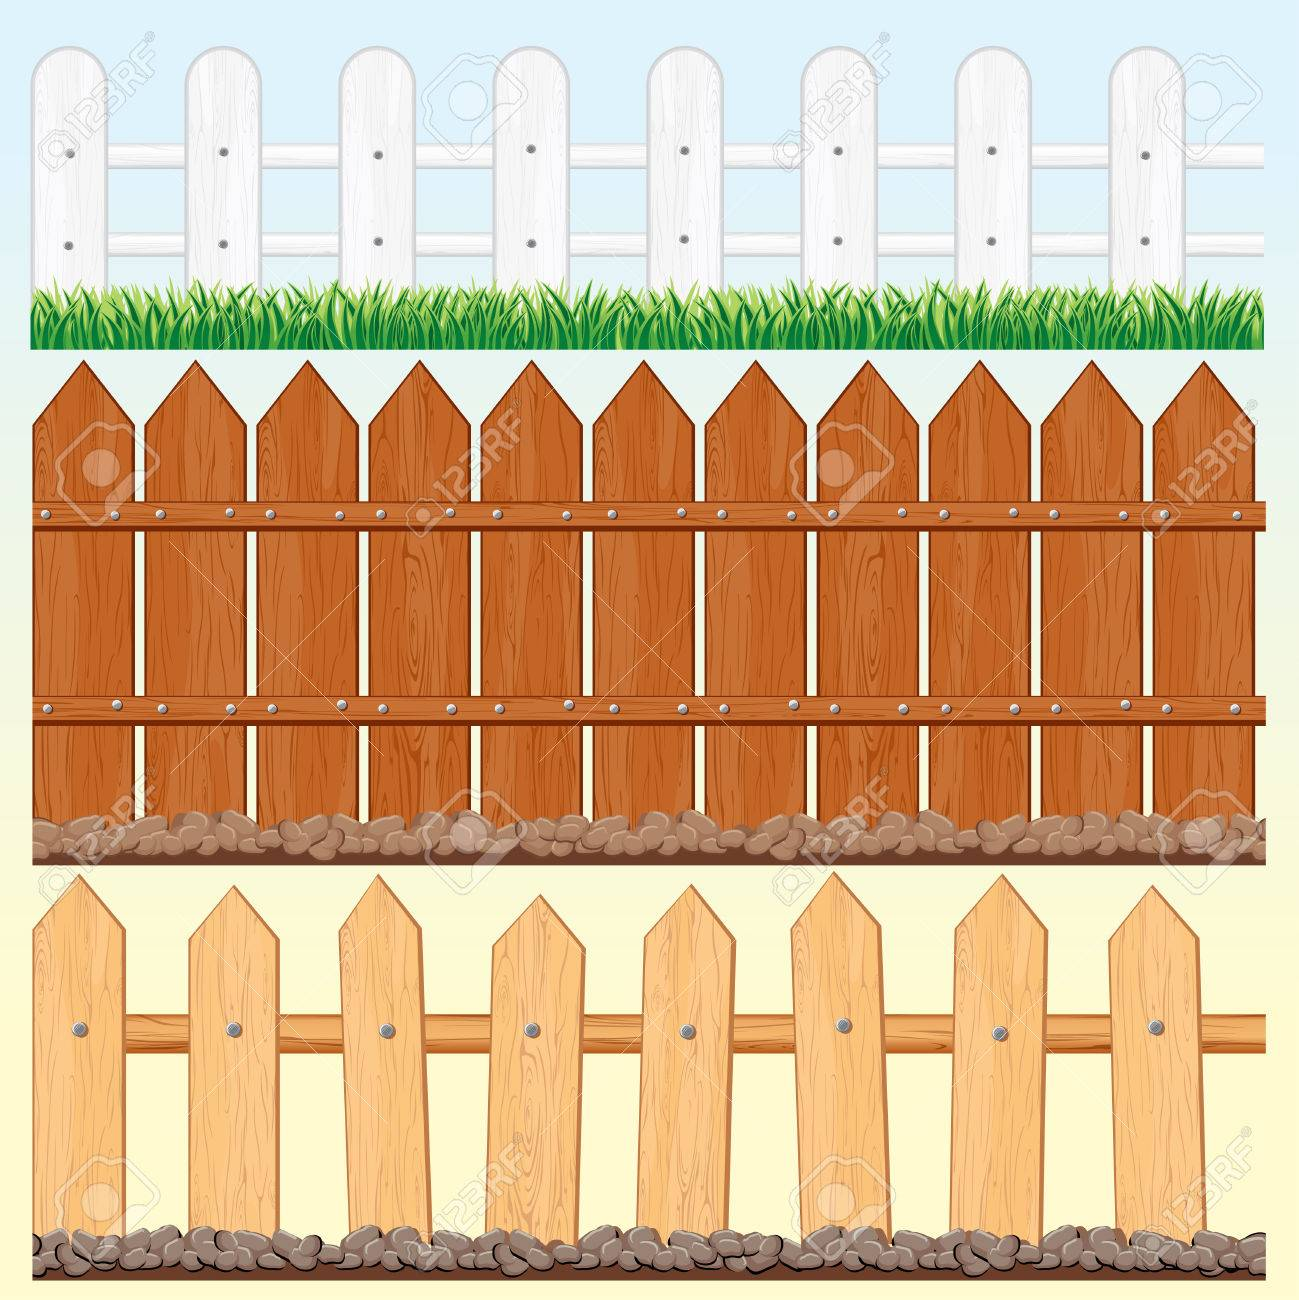 Wooden Farm Fence set of seamless wooden fences and palisades royalty free cliparts